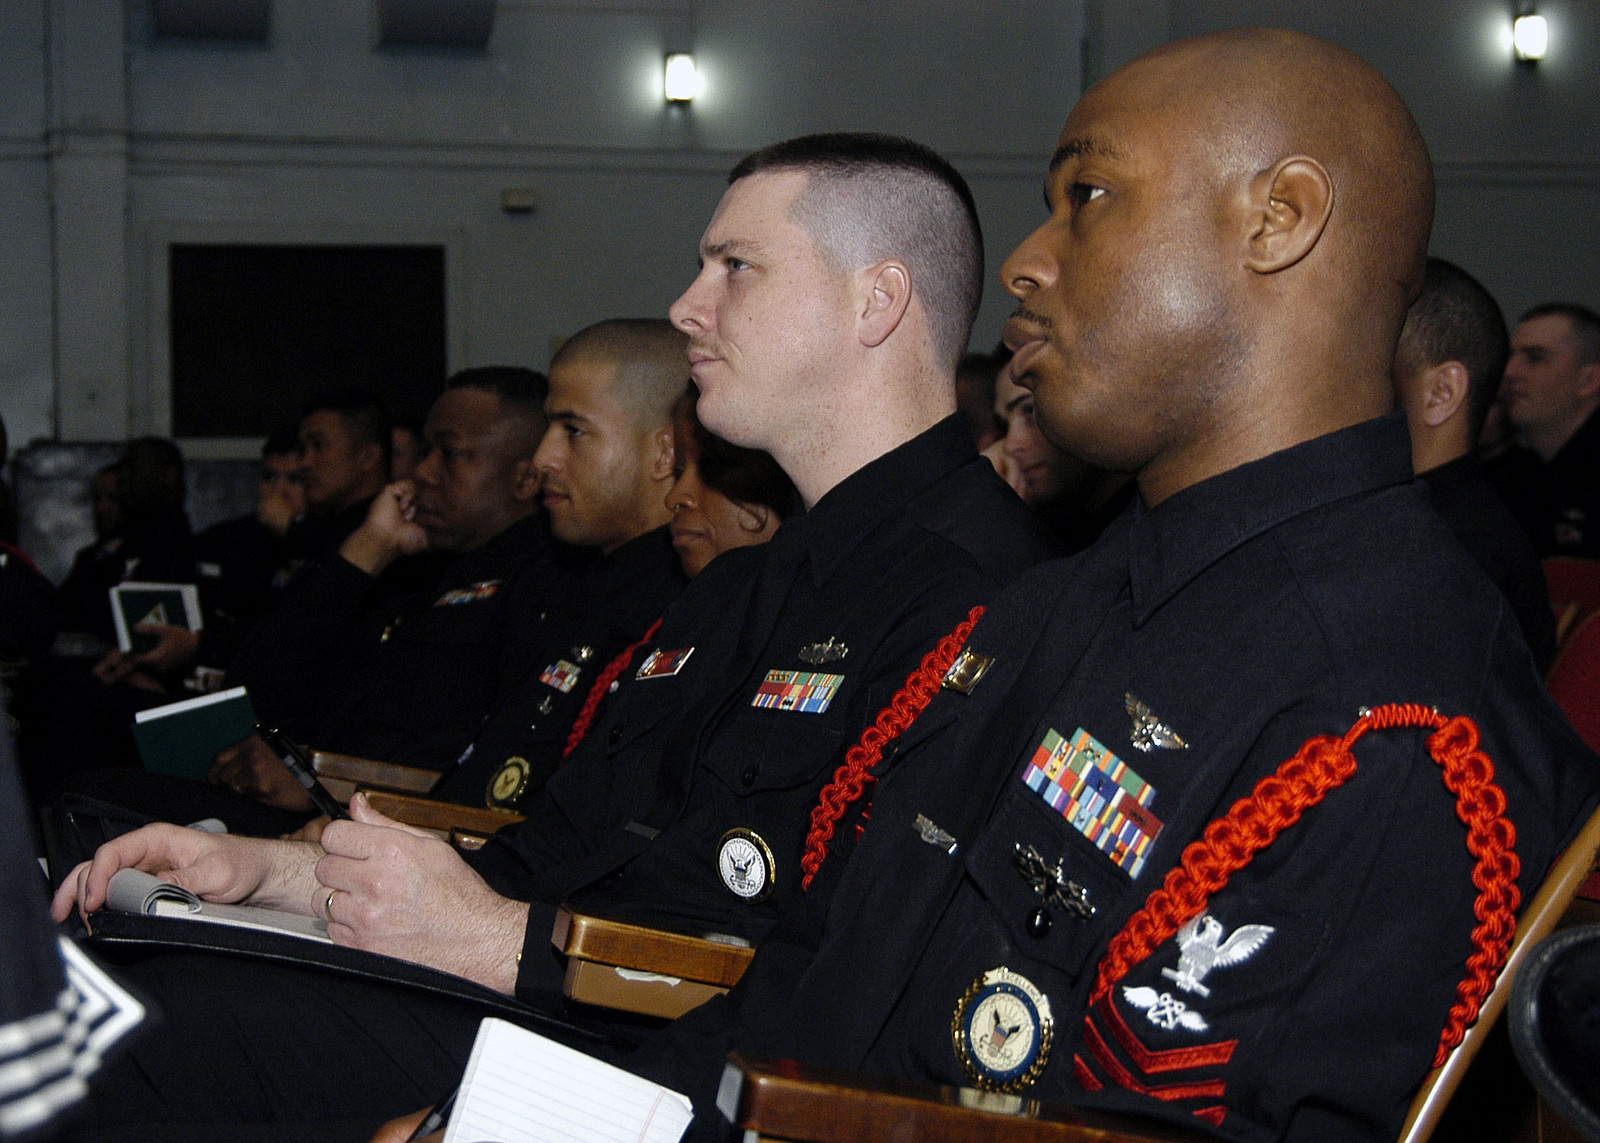 US Navy (USN) Enlisted Sailors who have obtained the rank of PETTY Officer First Class (PO1), from all over the nation attend the first ever, First Class Symposium held at the Navy Operational Support Center, Naval Air Station (NAS) Jacksonville, Florida (FL). The symposium had several guest speakers giving presentations and answering questions on advancement to CHIEF PETTY Officer (CPO), rights and responsibilities and other various opportunities the Navy has to offer its Sailors